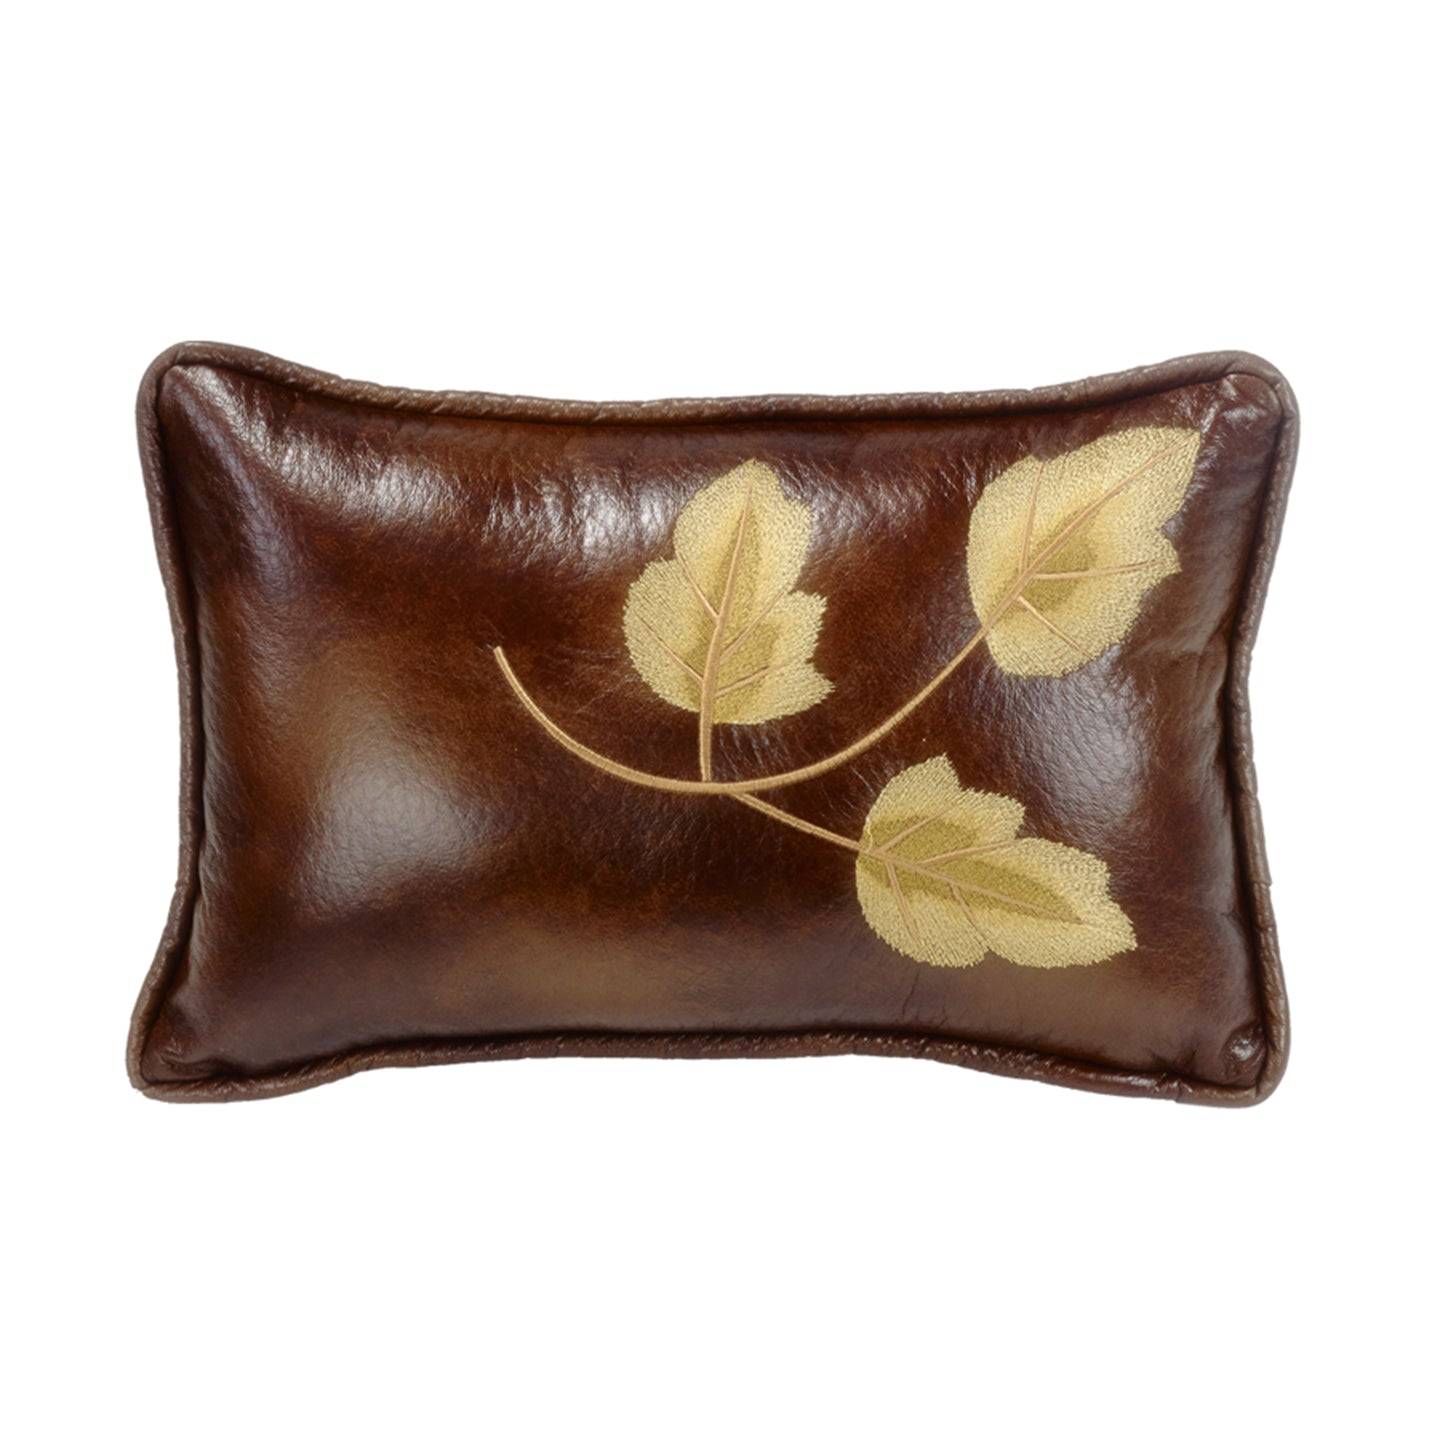 Highland Lodge Embroidery Leaf Pillow